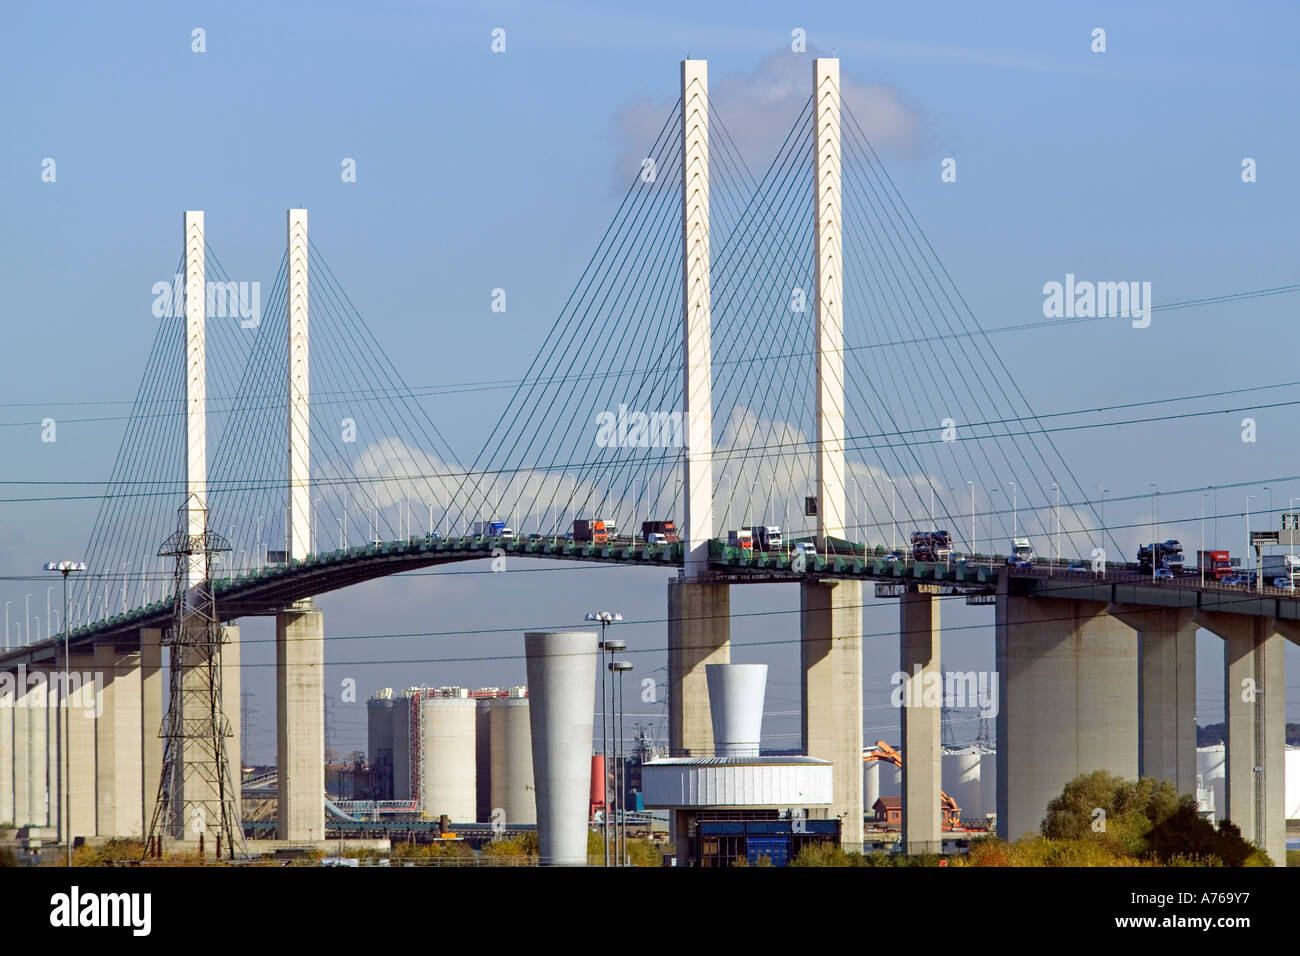 A compressed perspective view of traffic on the QE2 bridge on a sunny day. - Stock Image